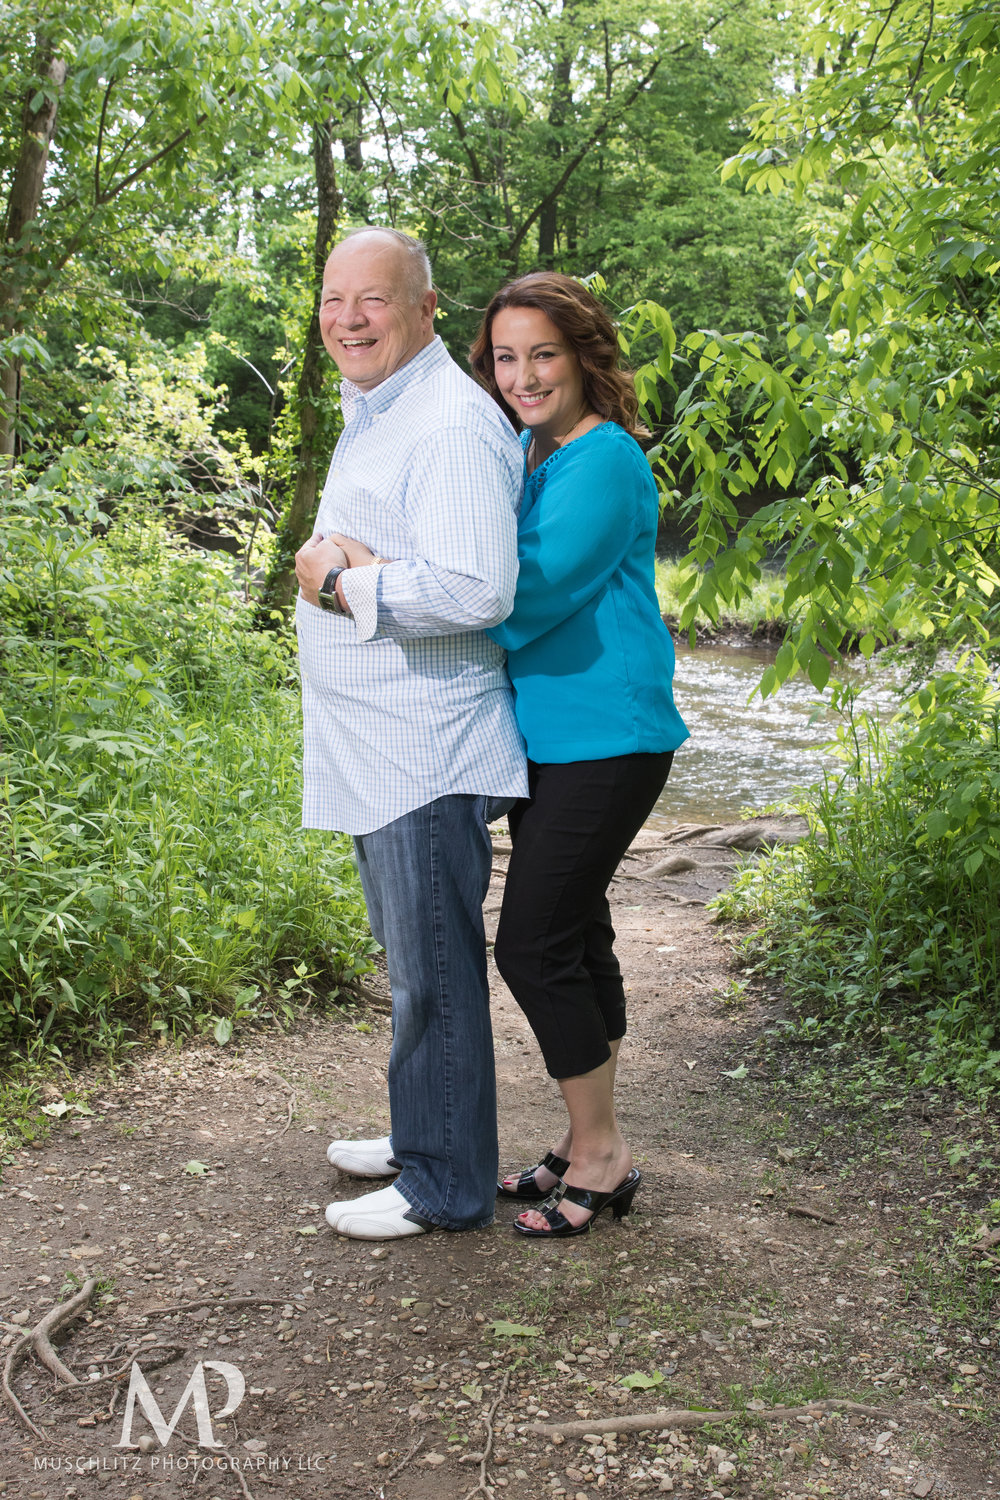 anniversary-couple-portrait-session-creekside-park-plaza-gahanna-ohio-boxer-dog-muschlitz-photography-008.JPG